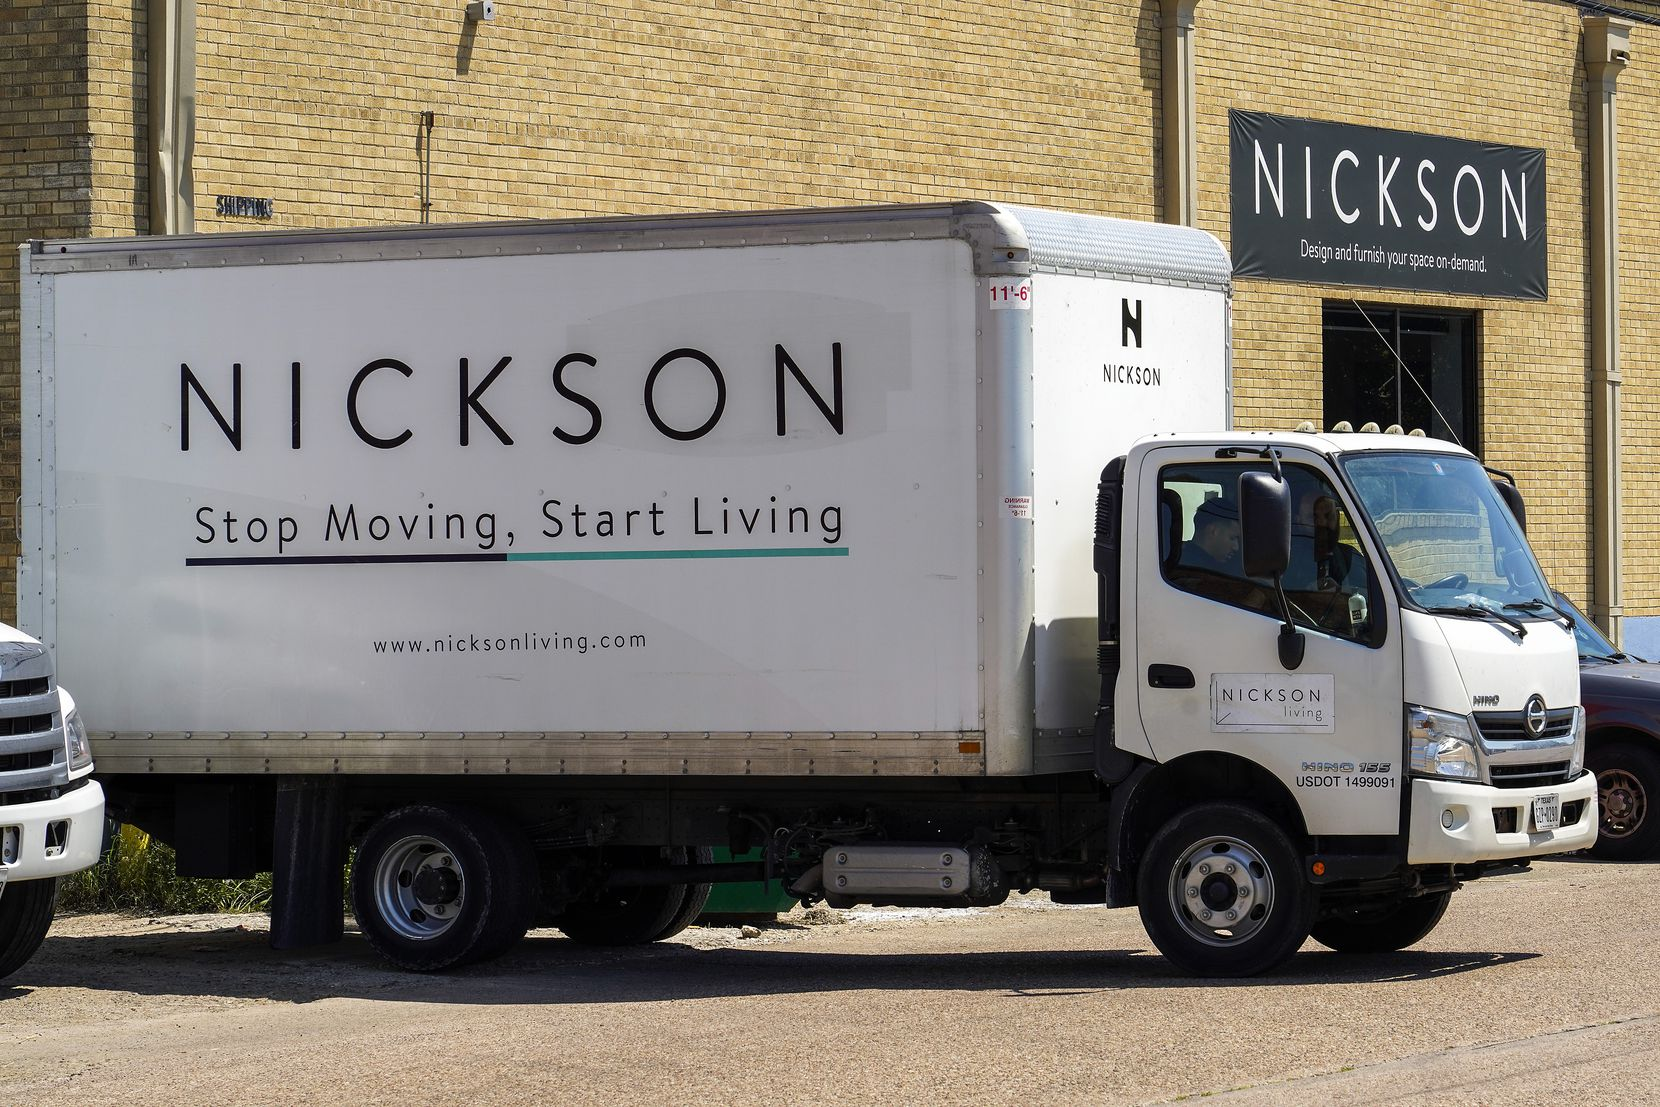 A delivery truck pulls up to the loading docks of the Nickson Furnished offices.